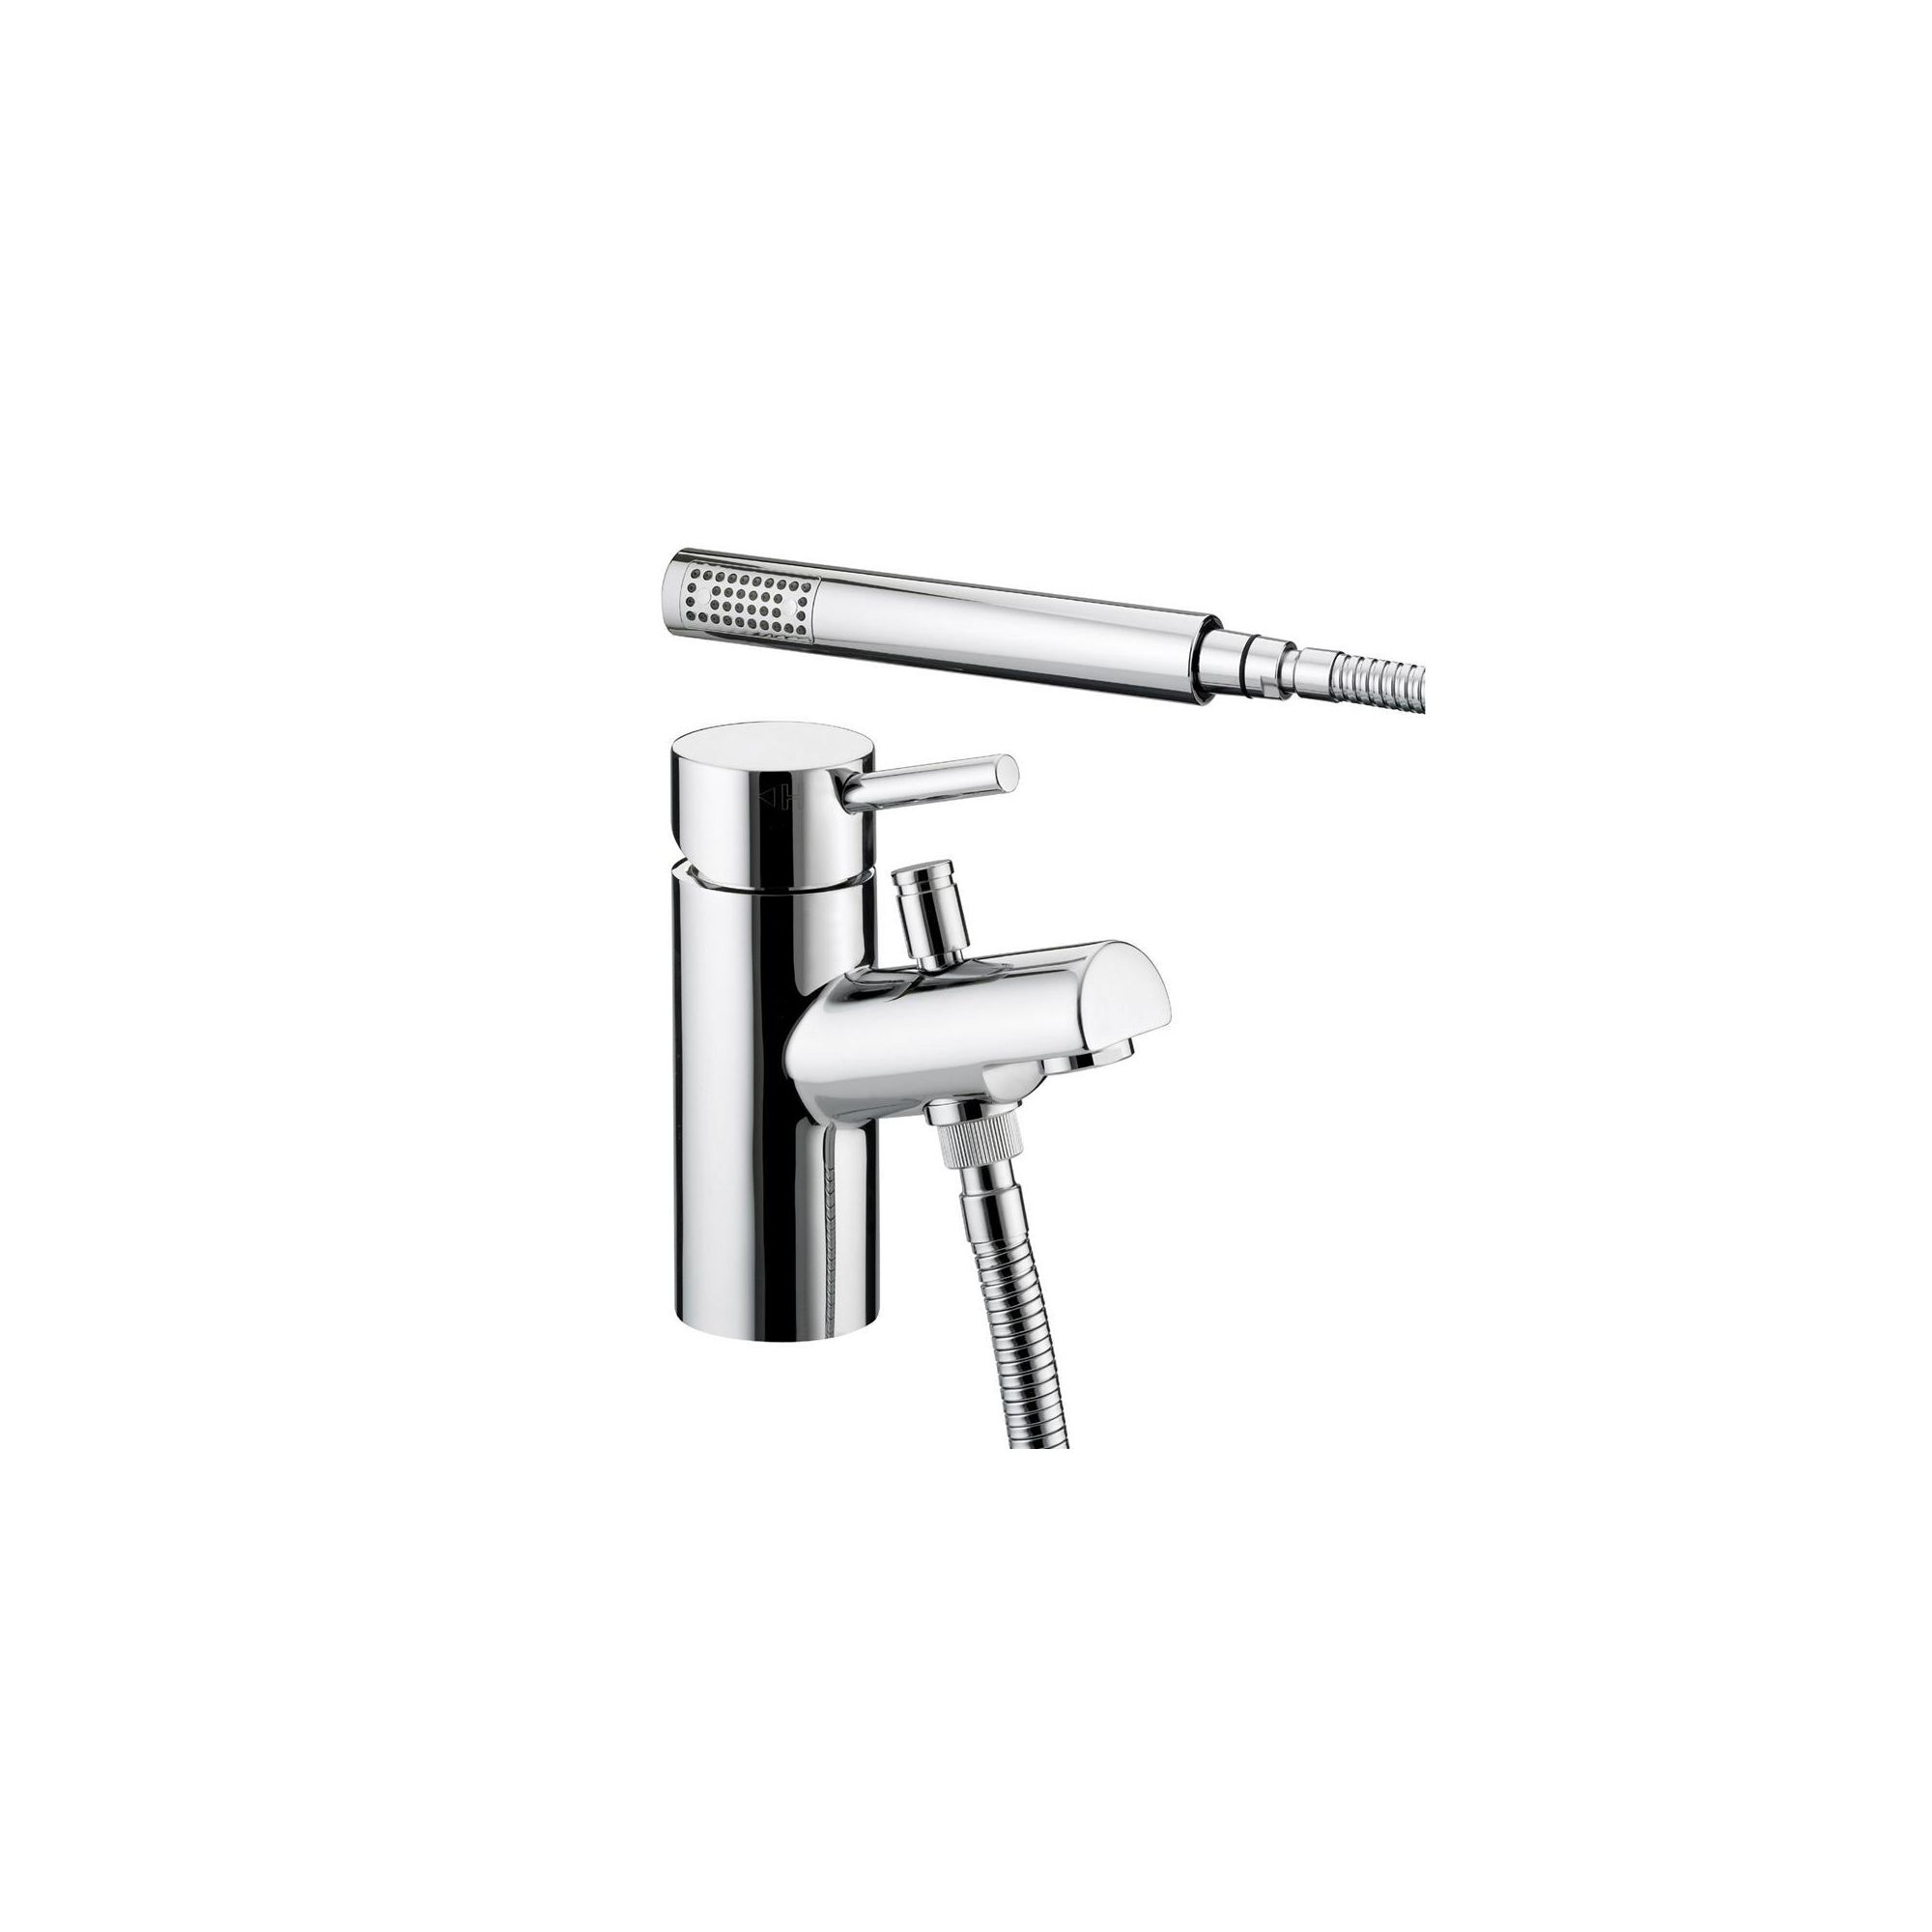 Bristan Prism 1 Hole Bath Shower Mixer Tap Chrome Plated at Tesco Direct